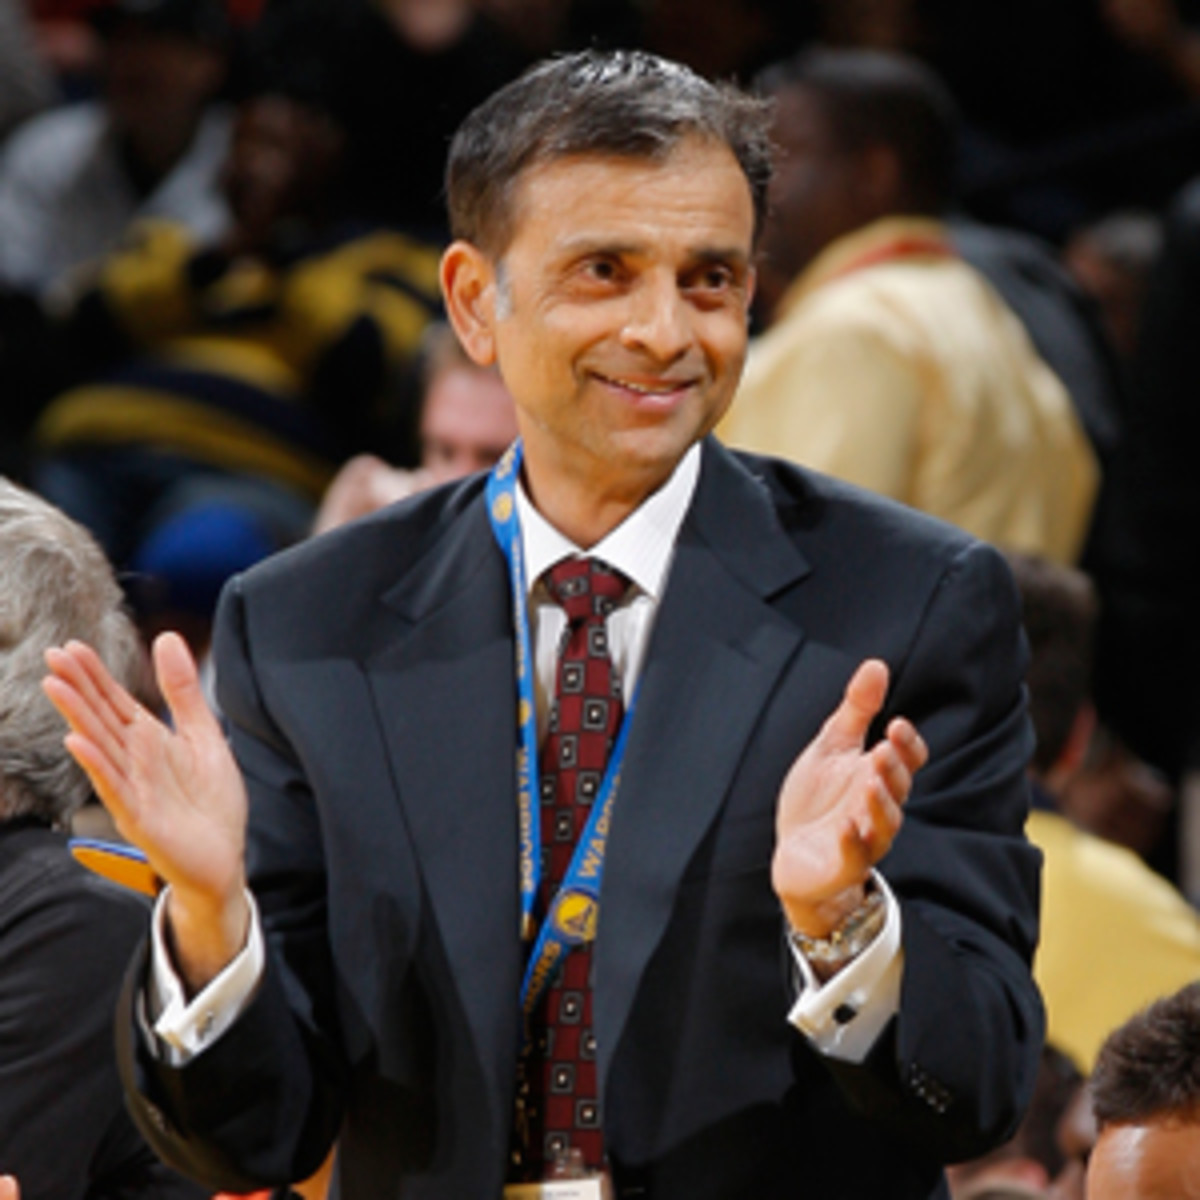 """Warriors minority owner Vivek Ranadive has promoted """"Bollywood Nights"""" at Warriors games. (Rocky Widner/NBAE via Getty Images)"""